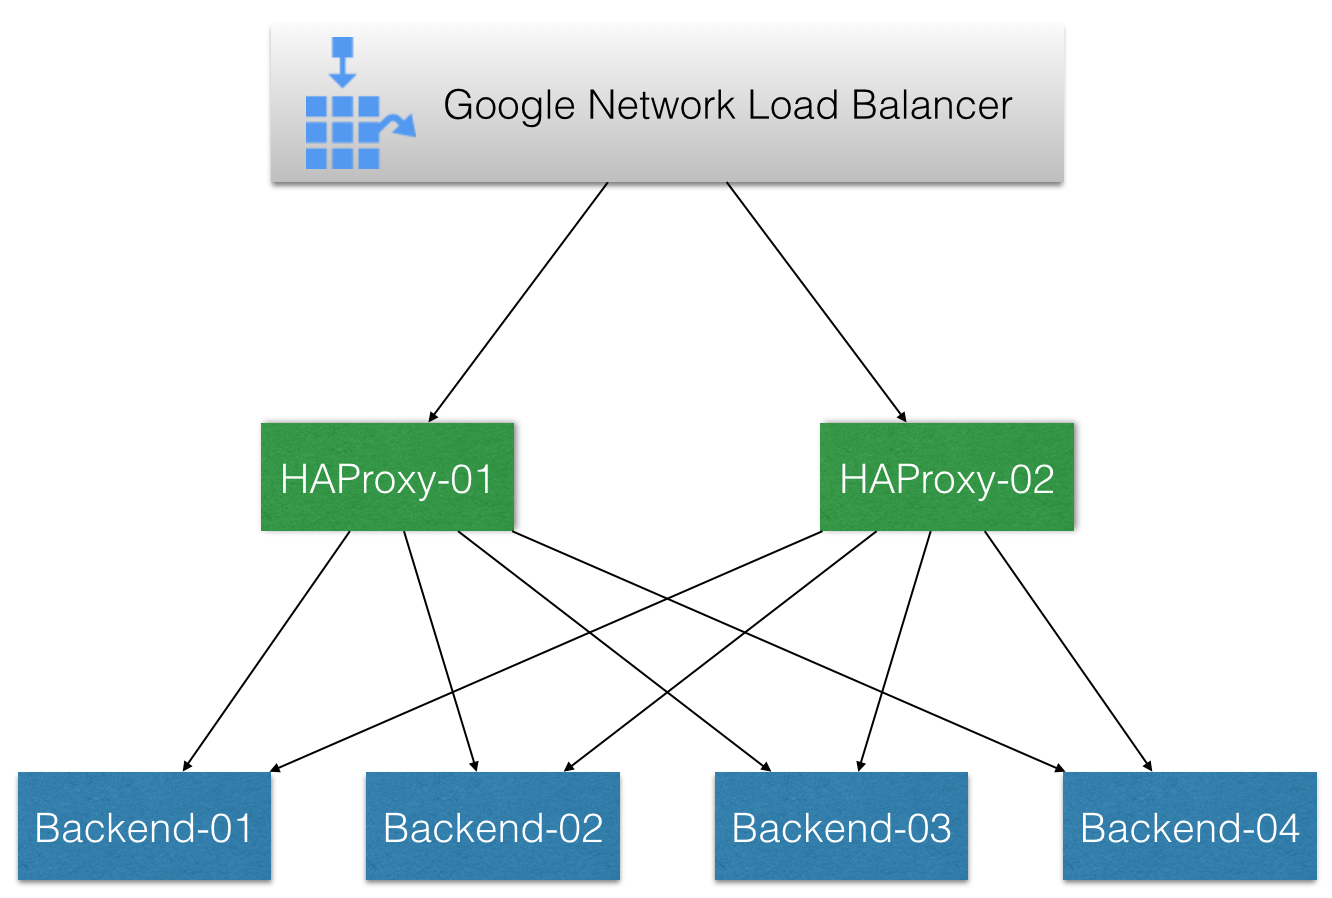 Nostra Technology: Active-Active HAProxy Behind Google's